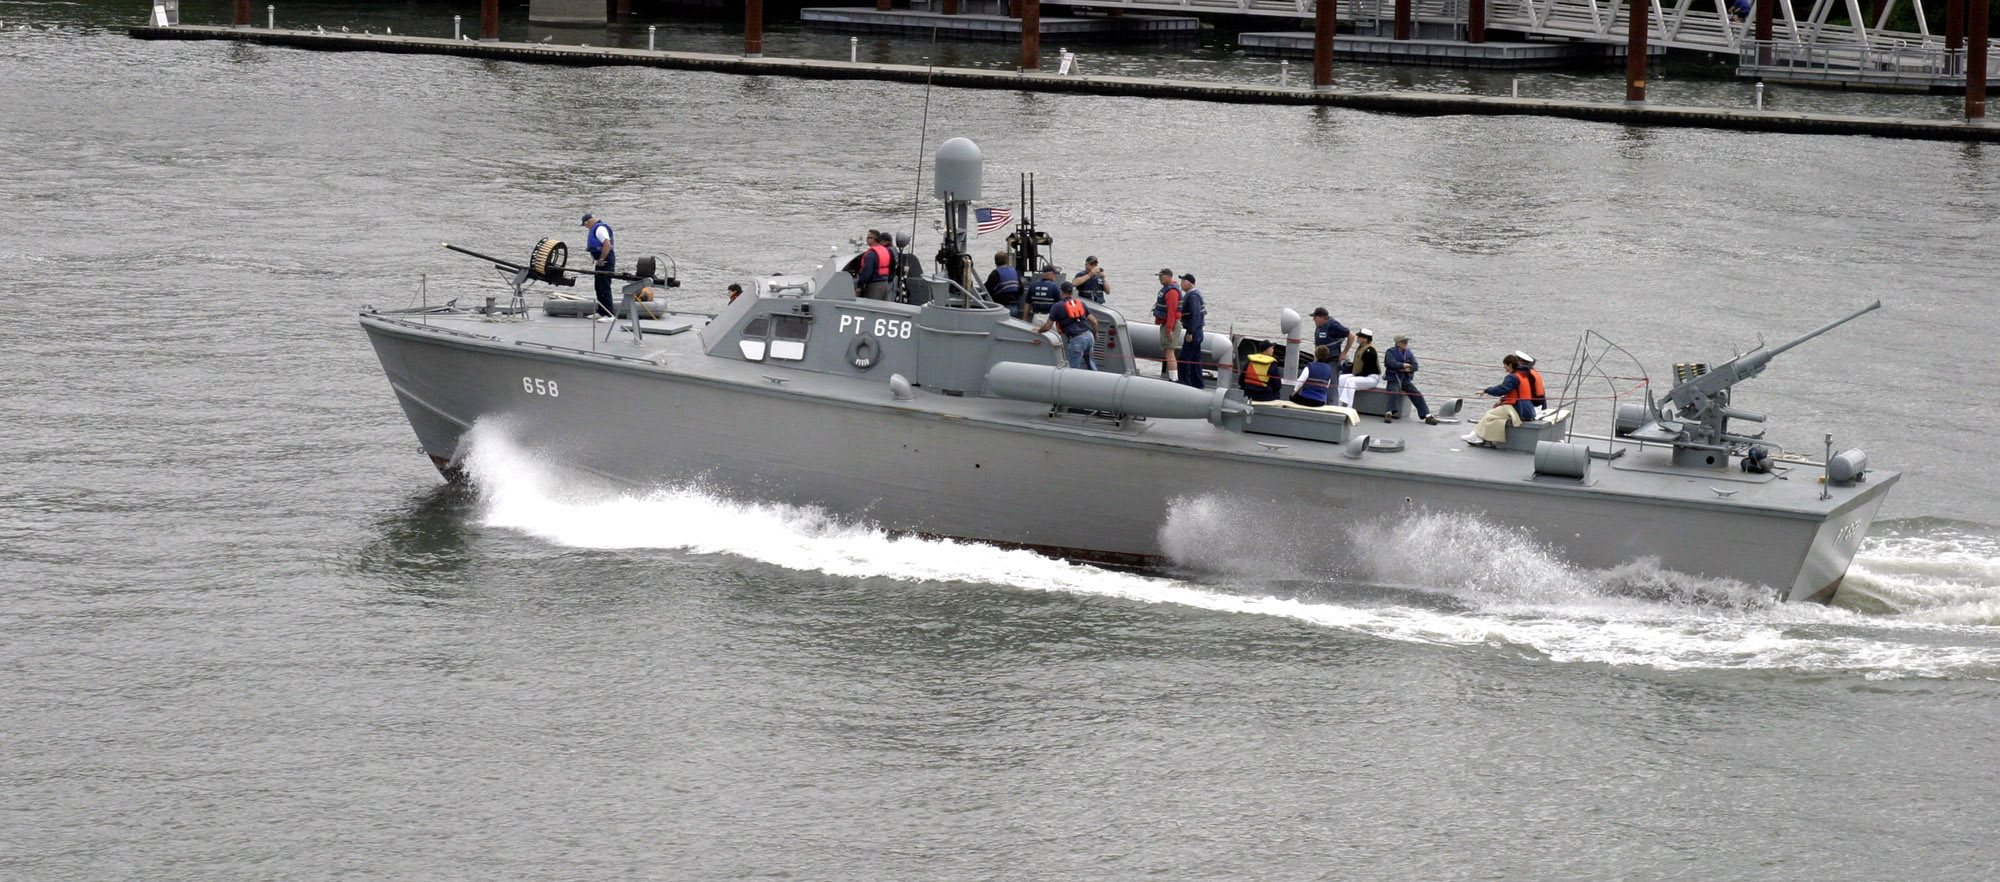 rc military boats for sale with D0 A4 D0 B0 D0 B9 D0 Bb Motor Torpedo Boat Pt 658 on Giant Scale Rc Airplanes likewise Porte Avions Lego additionally Stern Of Battleship Bismarck besides Watch also Rc Ready To Run La Class Diving Submarine 1100 Scale.